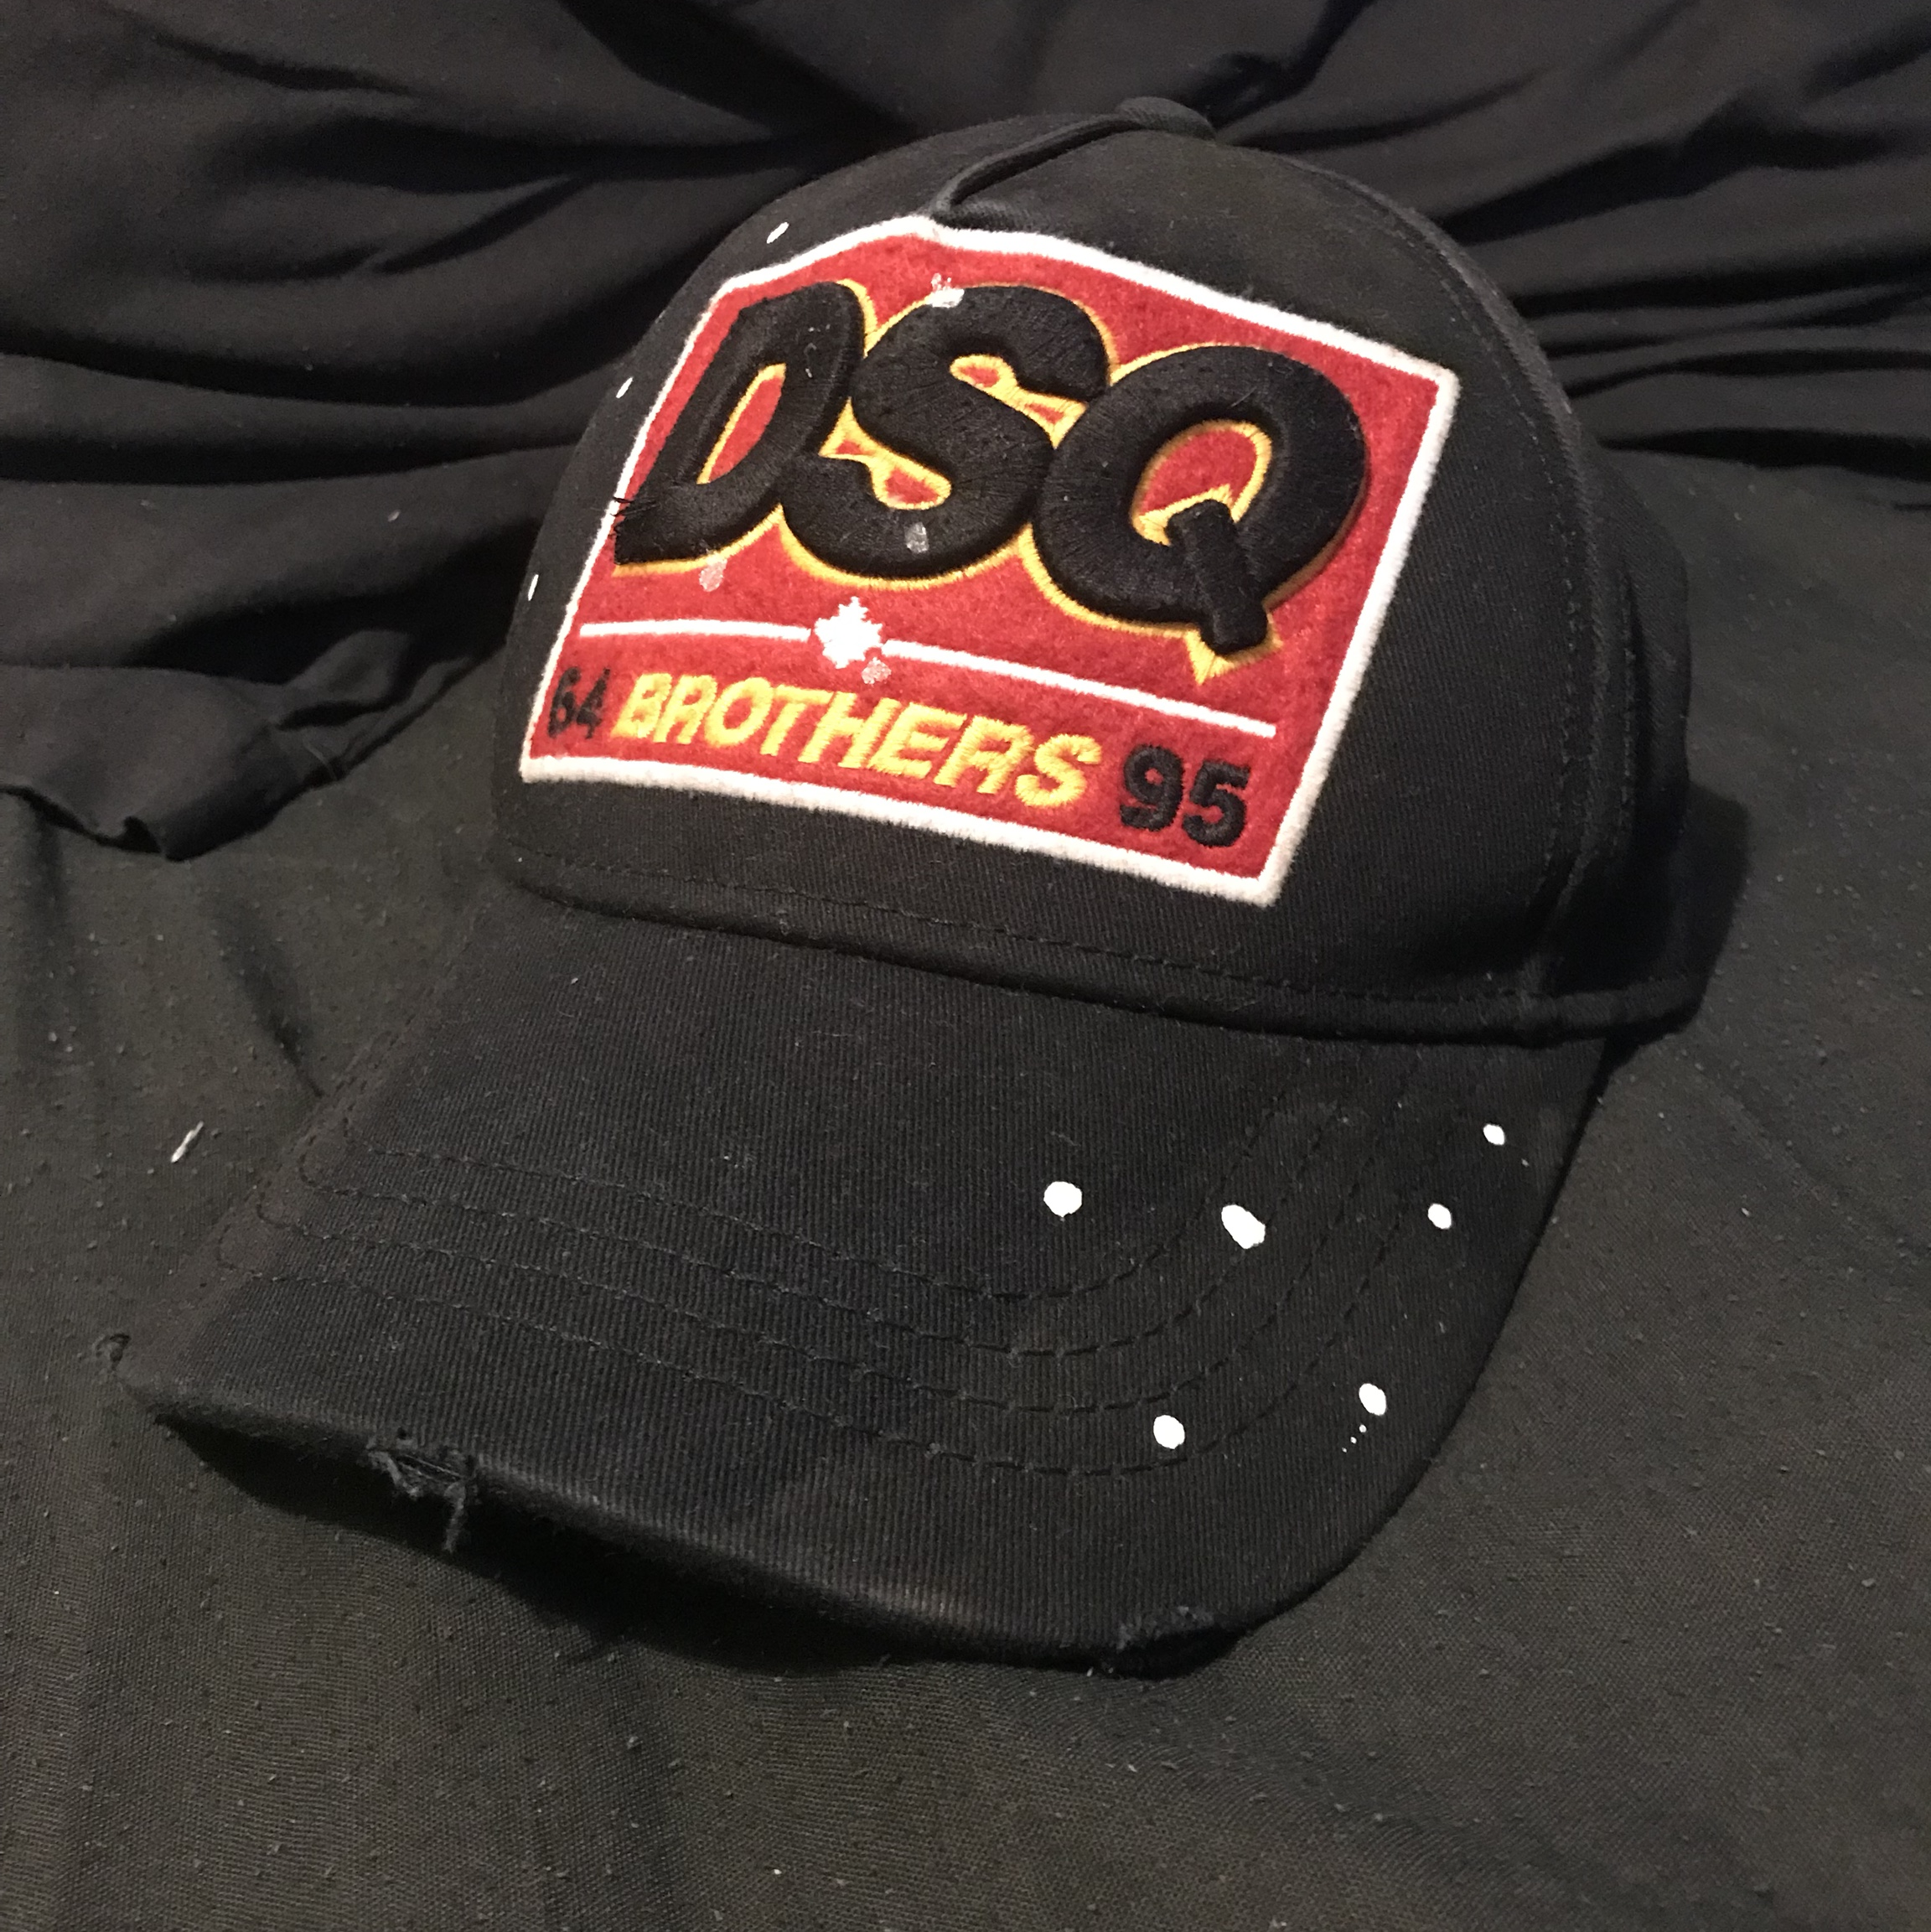 ba5f766fd DSquared2 Cap 'DSQ BROTHERS' With a pain splatter... - Depop